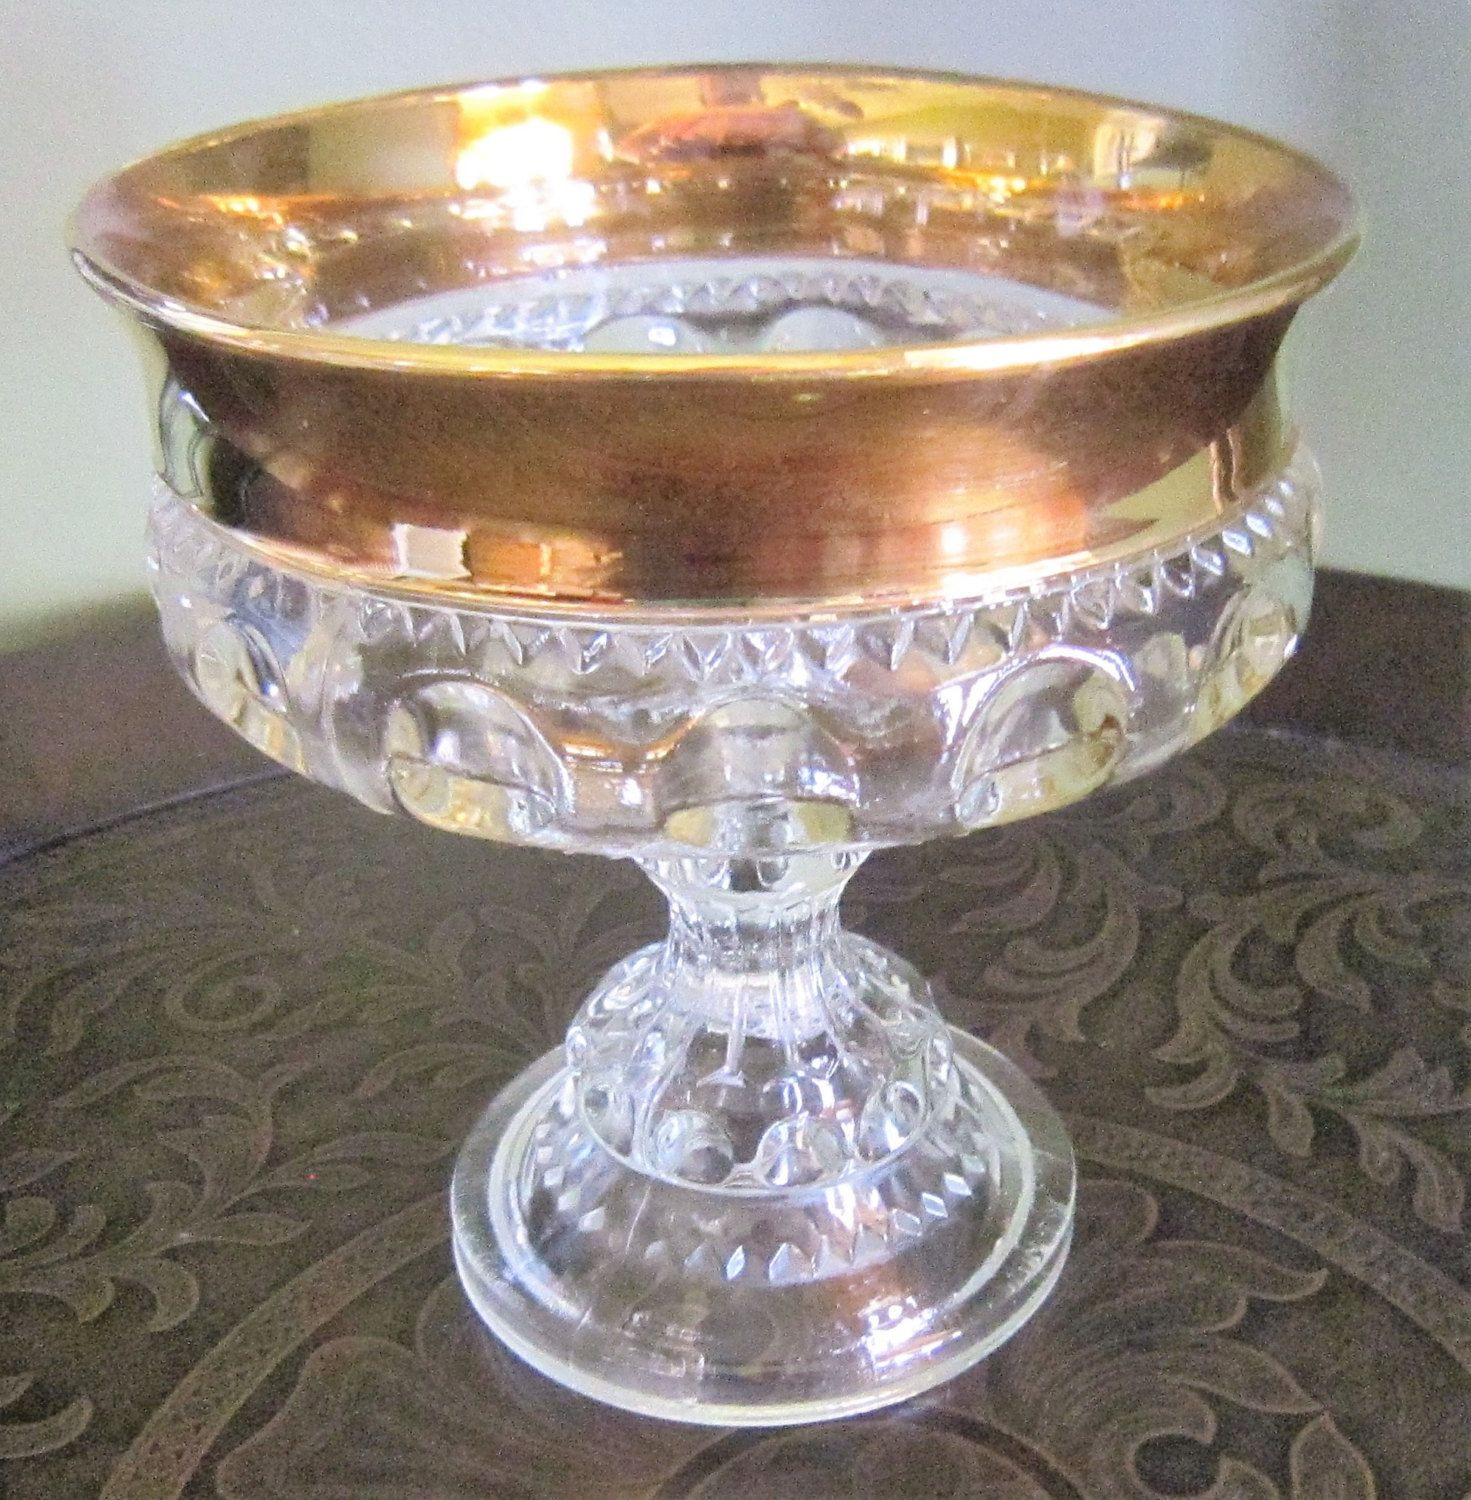 tall clear glass pedestal vase of vintage glass bowl kings crown pedestal bowl footed clear glass with vintage glass bowl kings crown pedestal bowl footed clear glass gold trim bowl